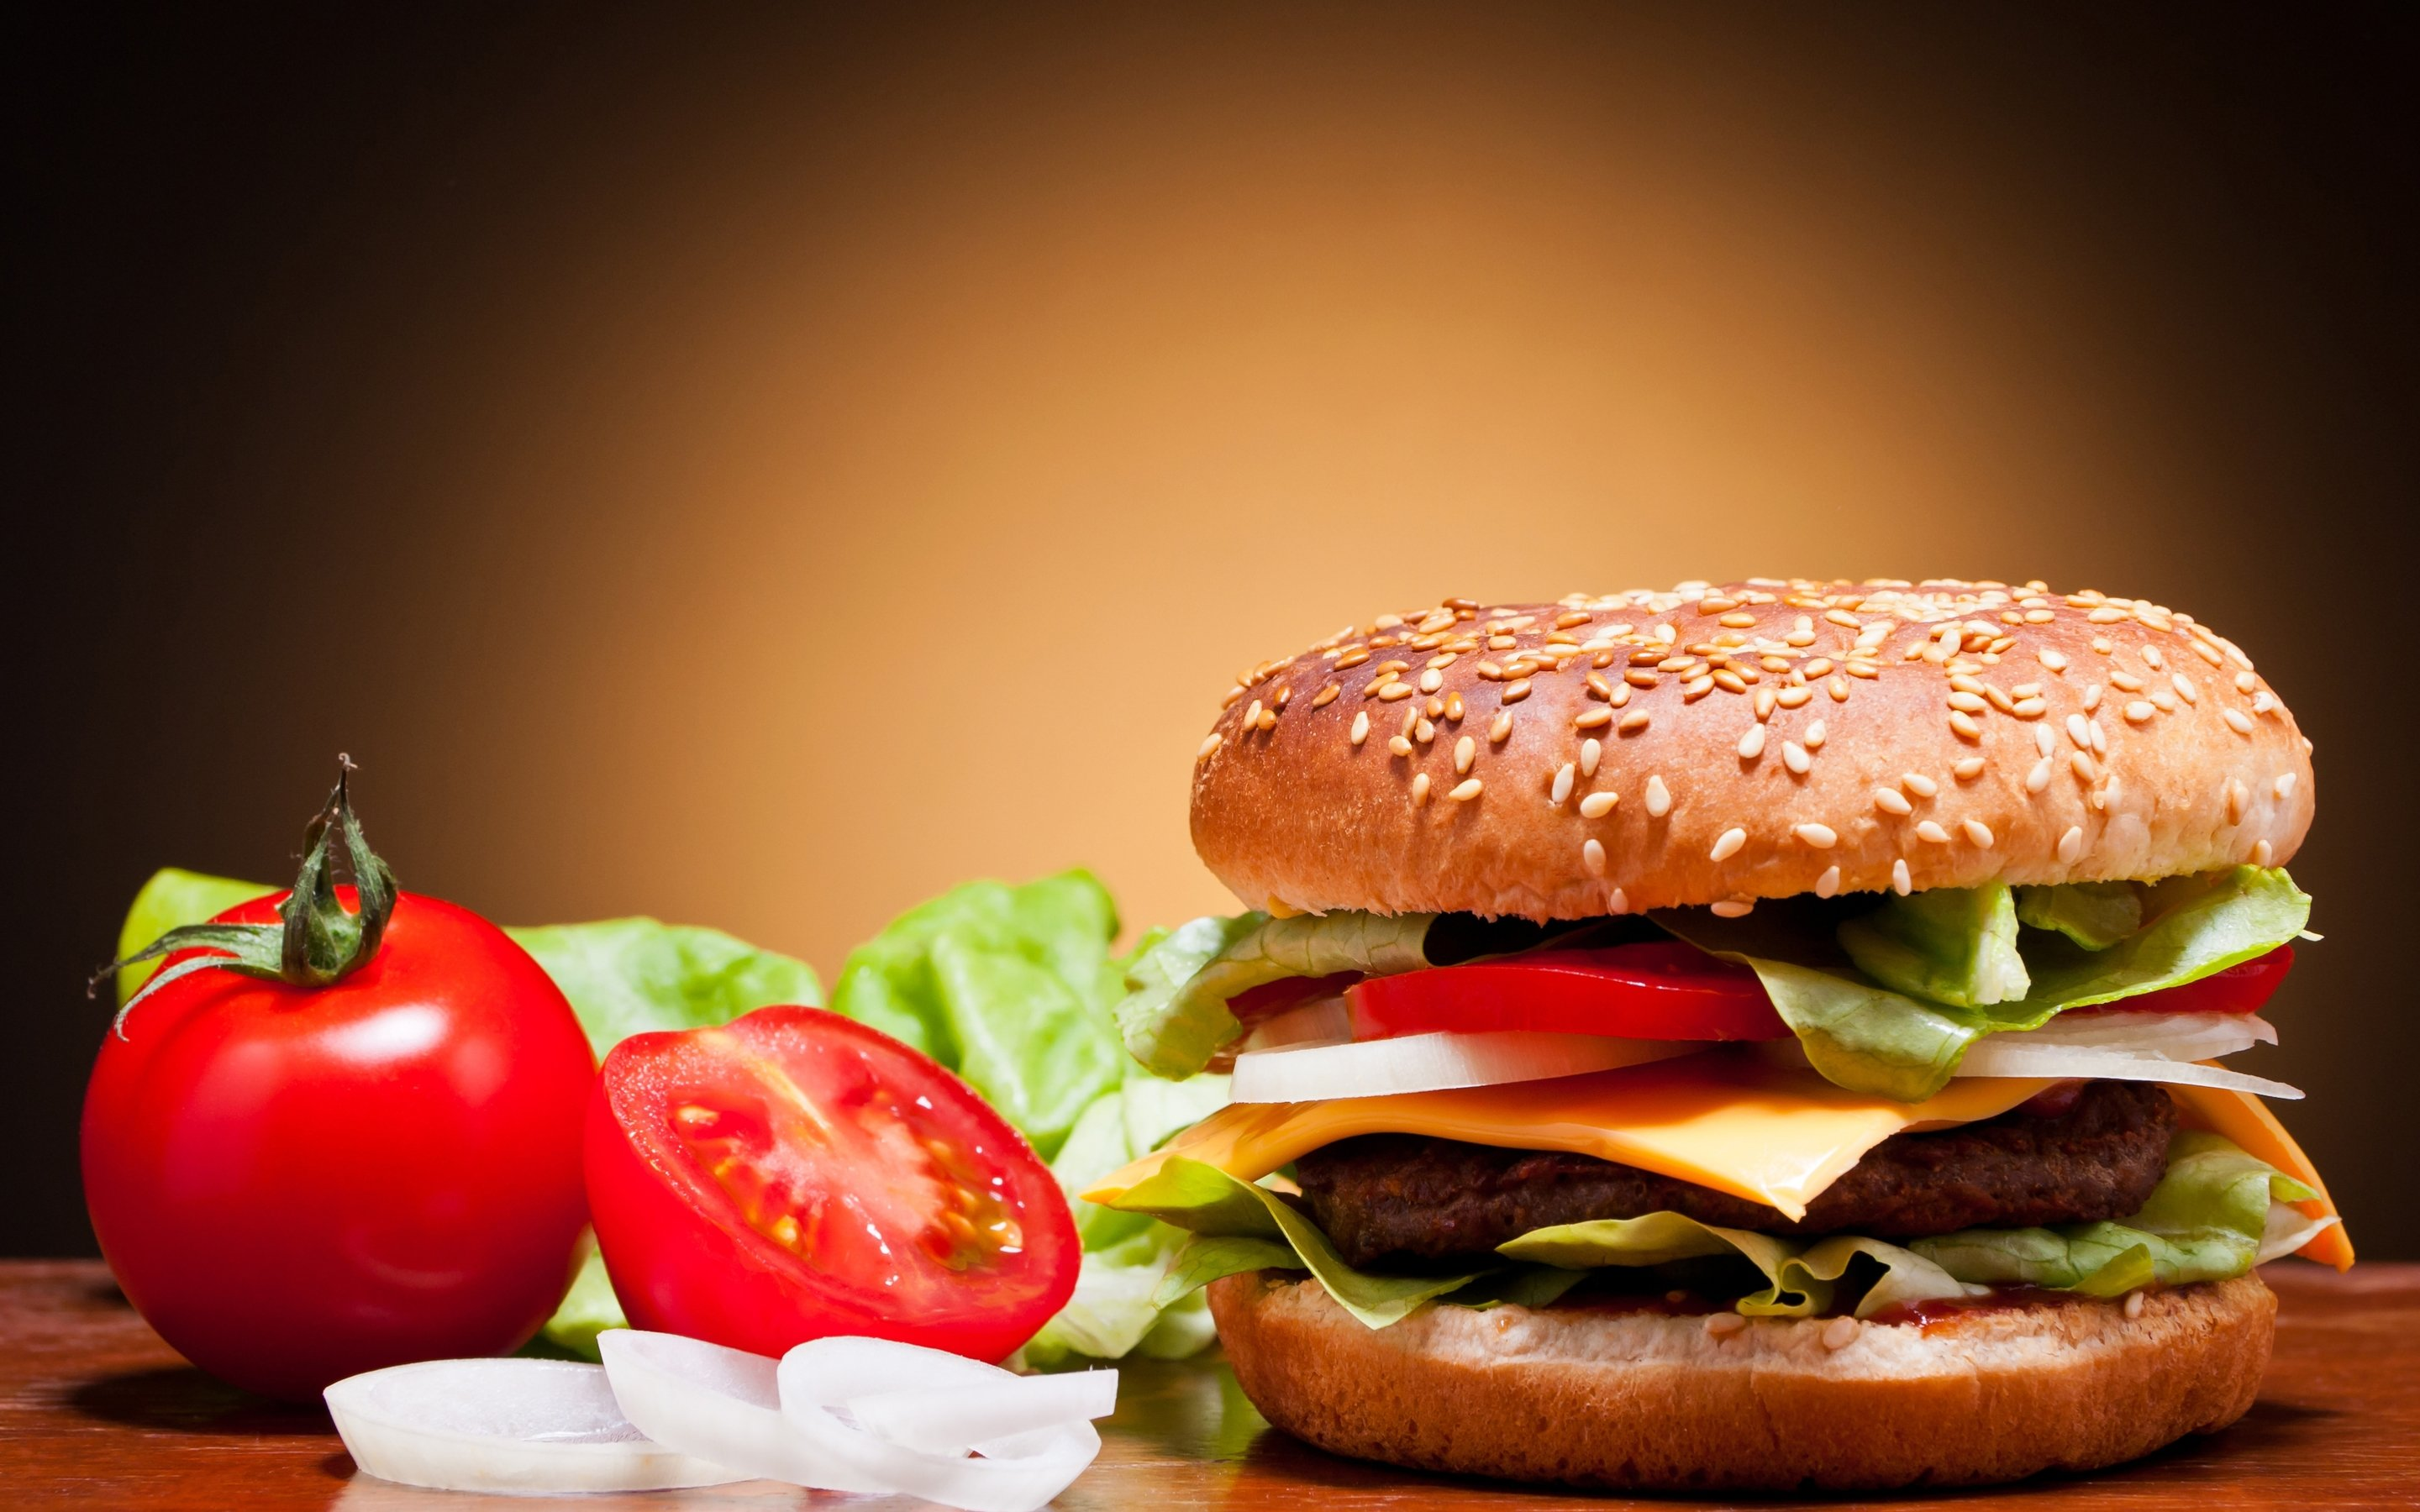 Free Burger high quality wallpaper ID:149145 for hd 2880x1800 computer